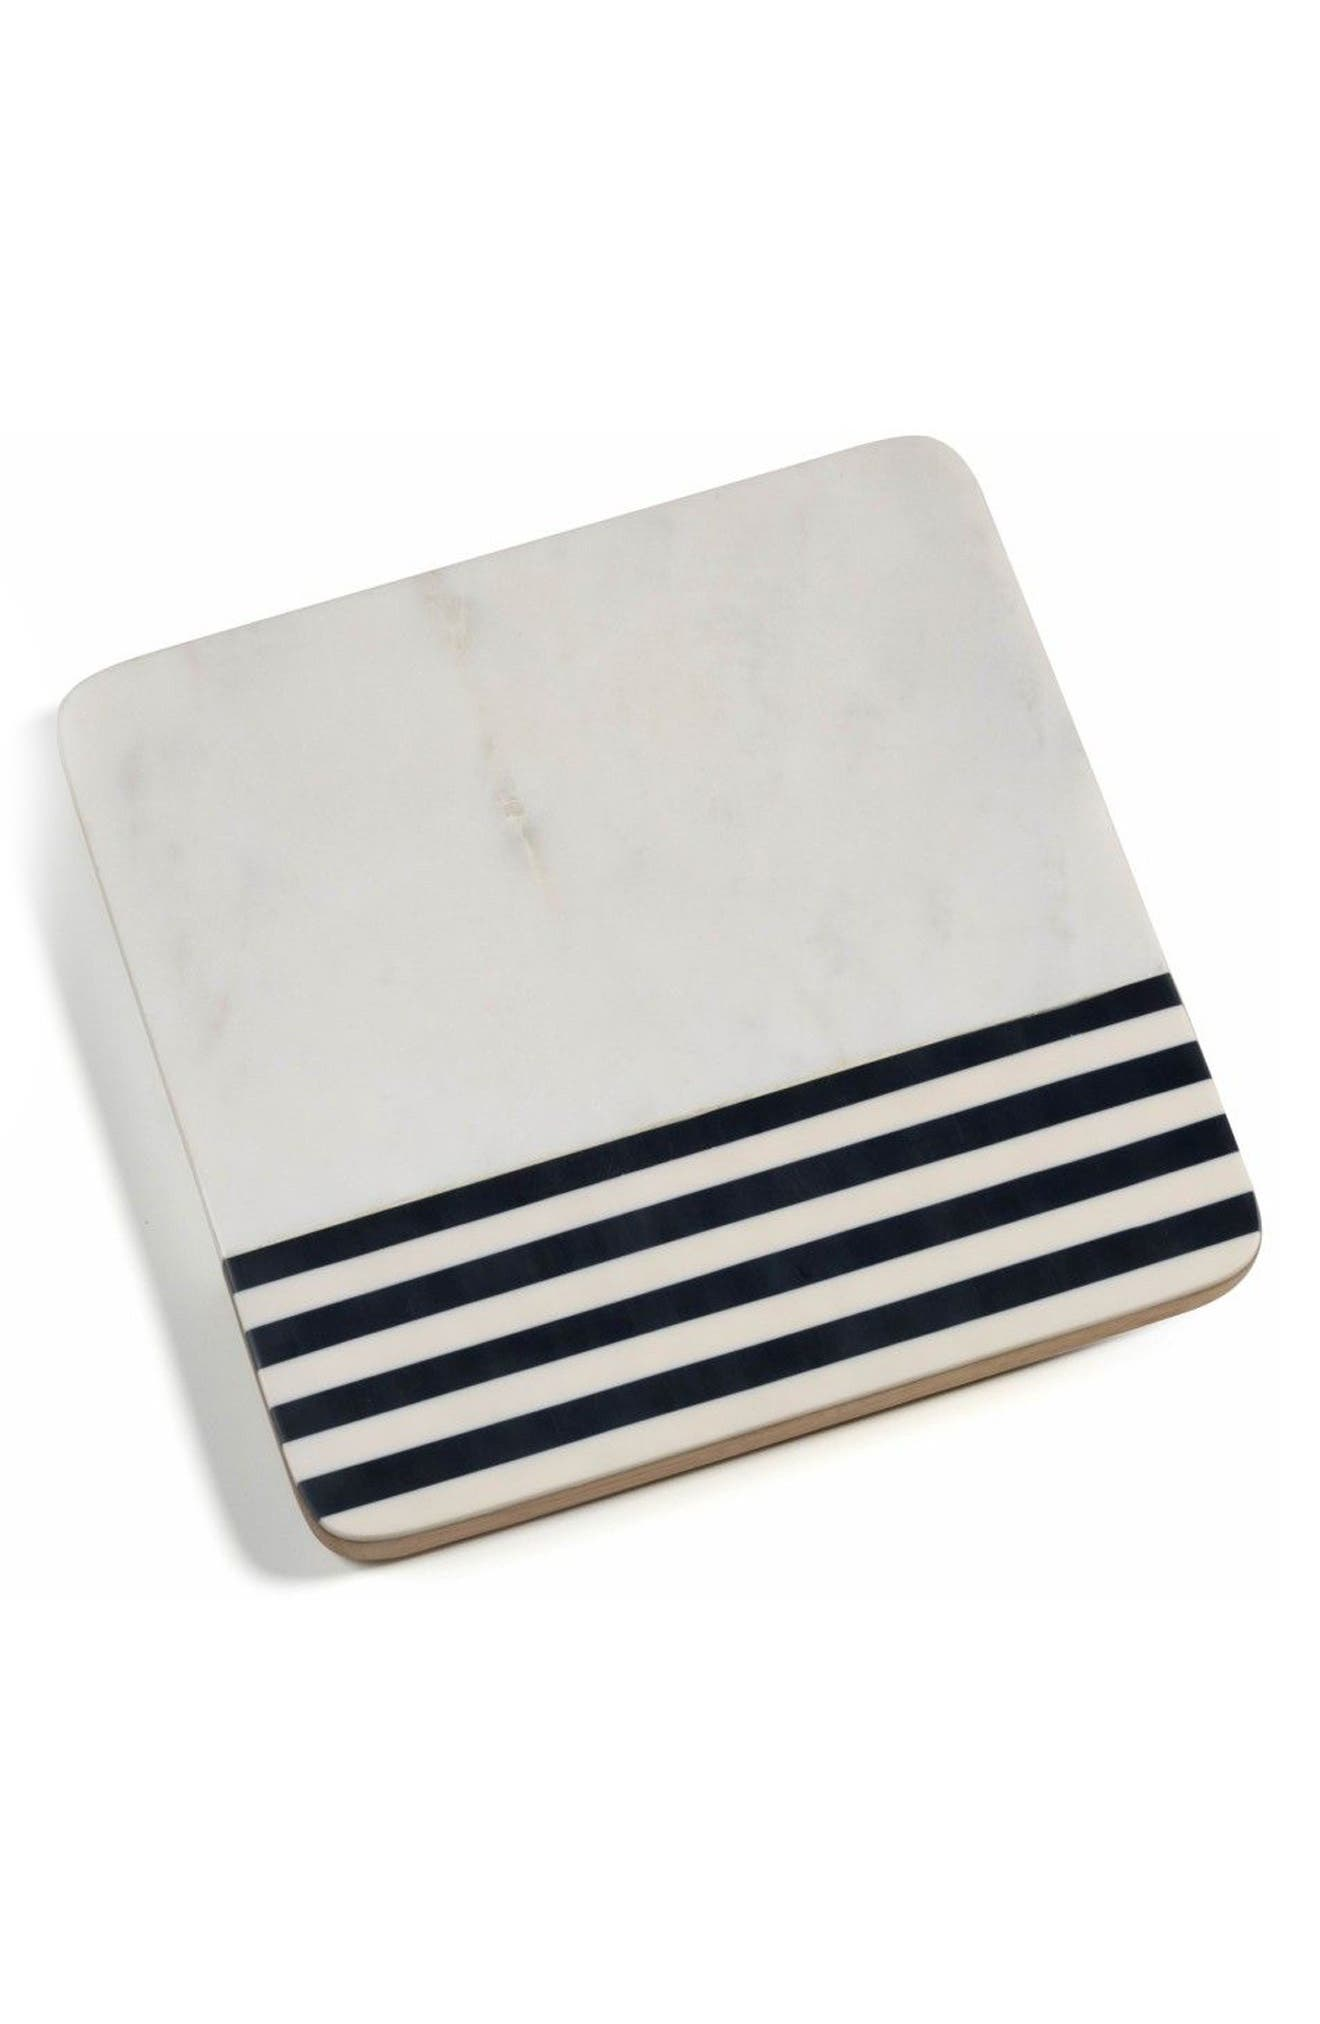 Marine Marble & Wood Cheese Board,                         Main,                         color, White/ Black